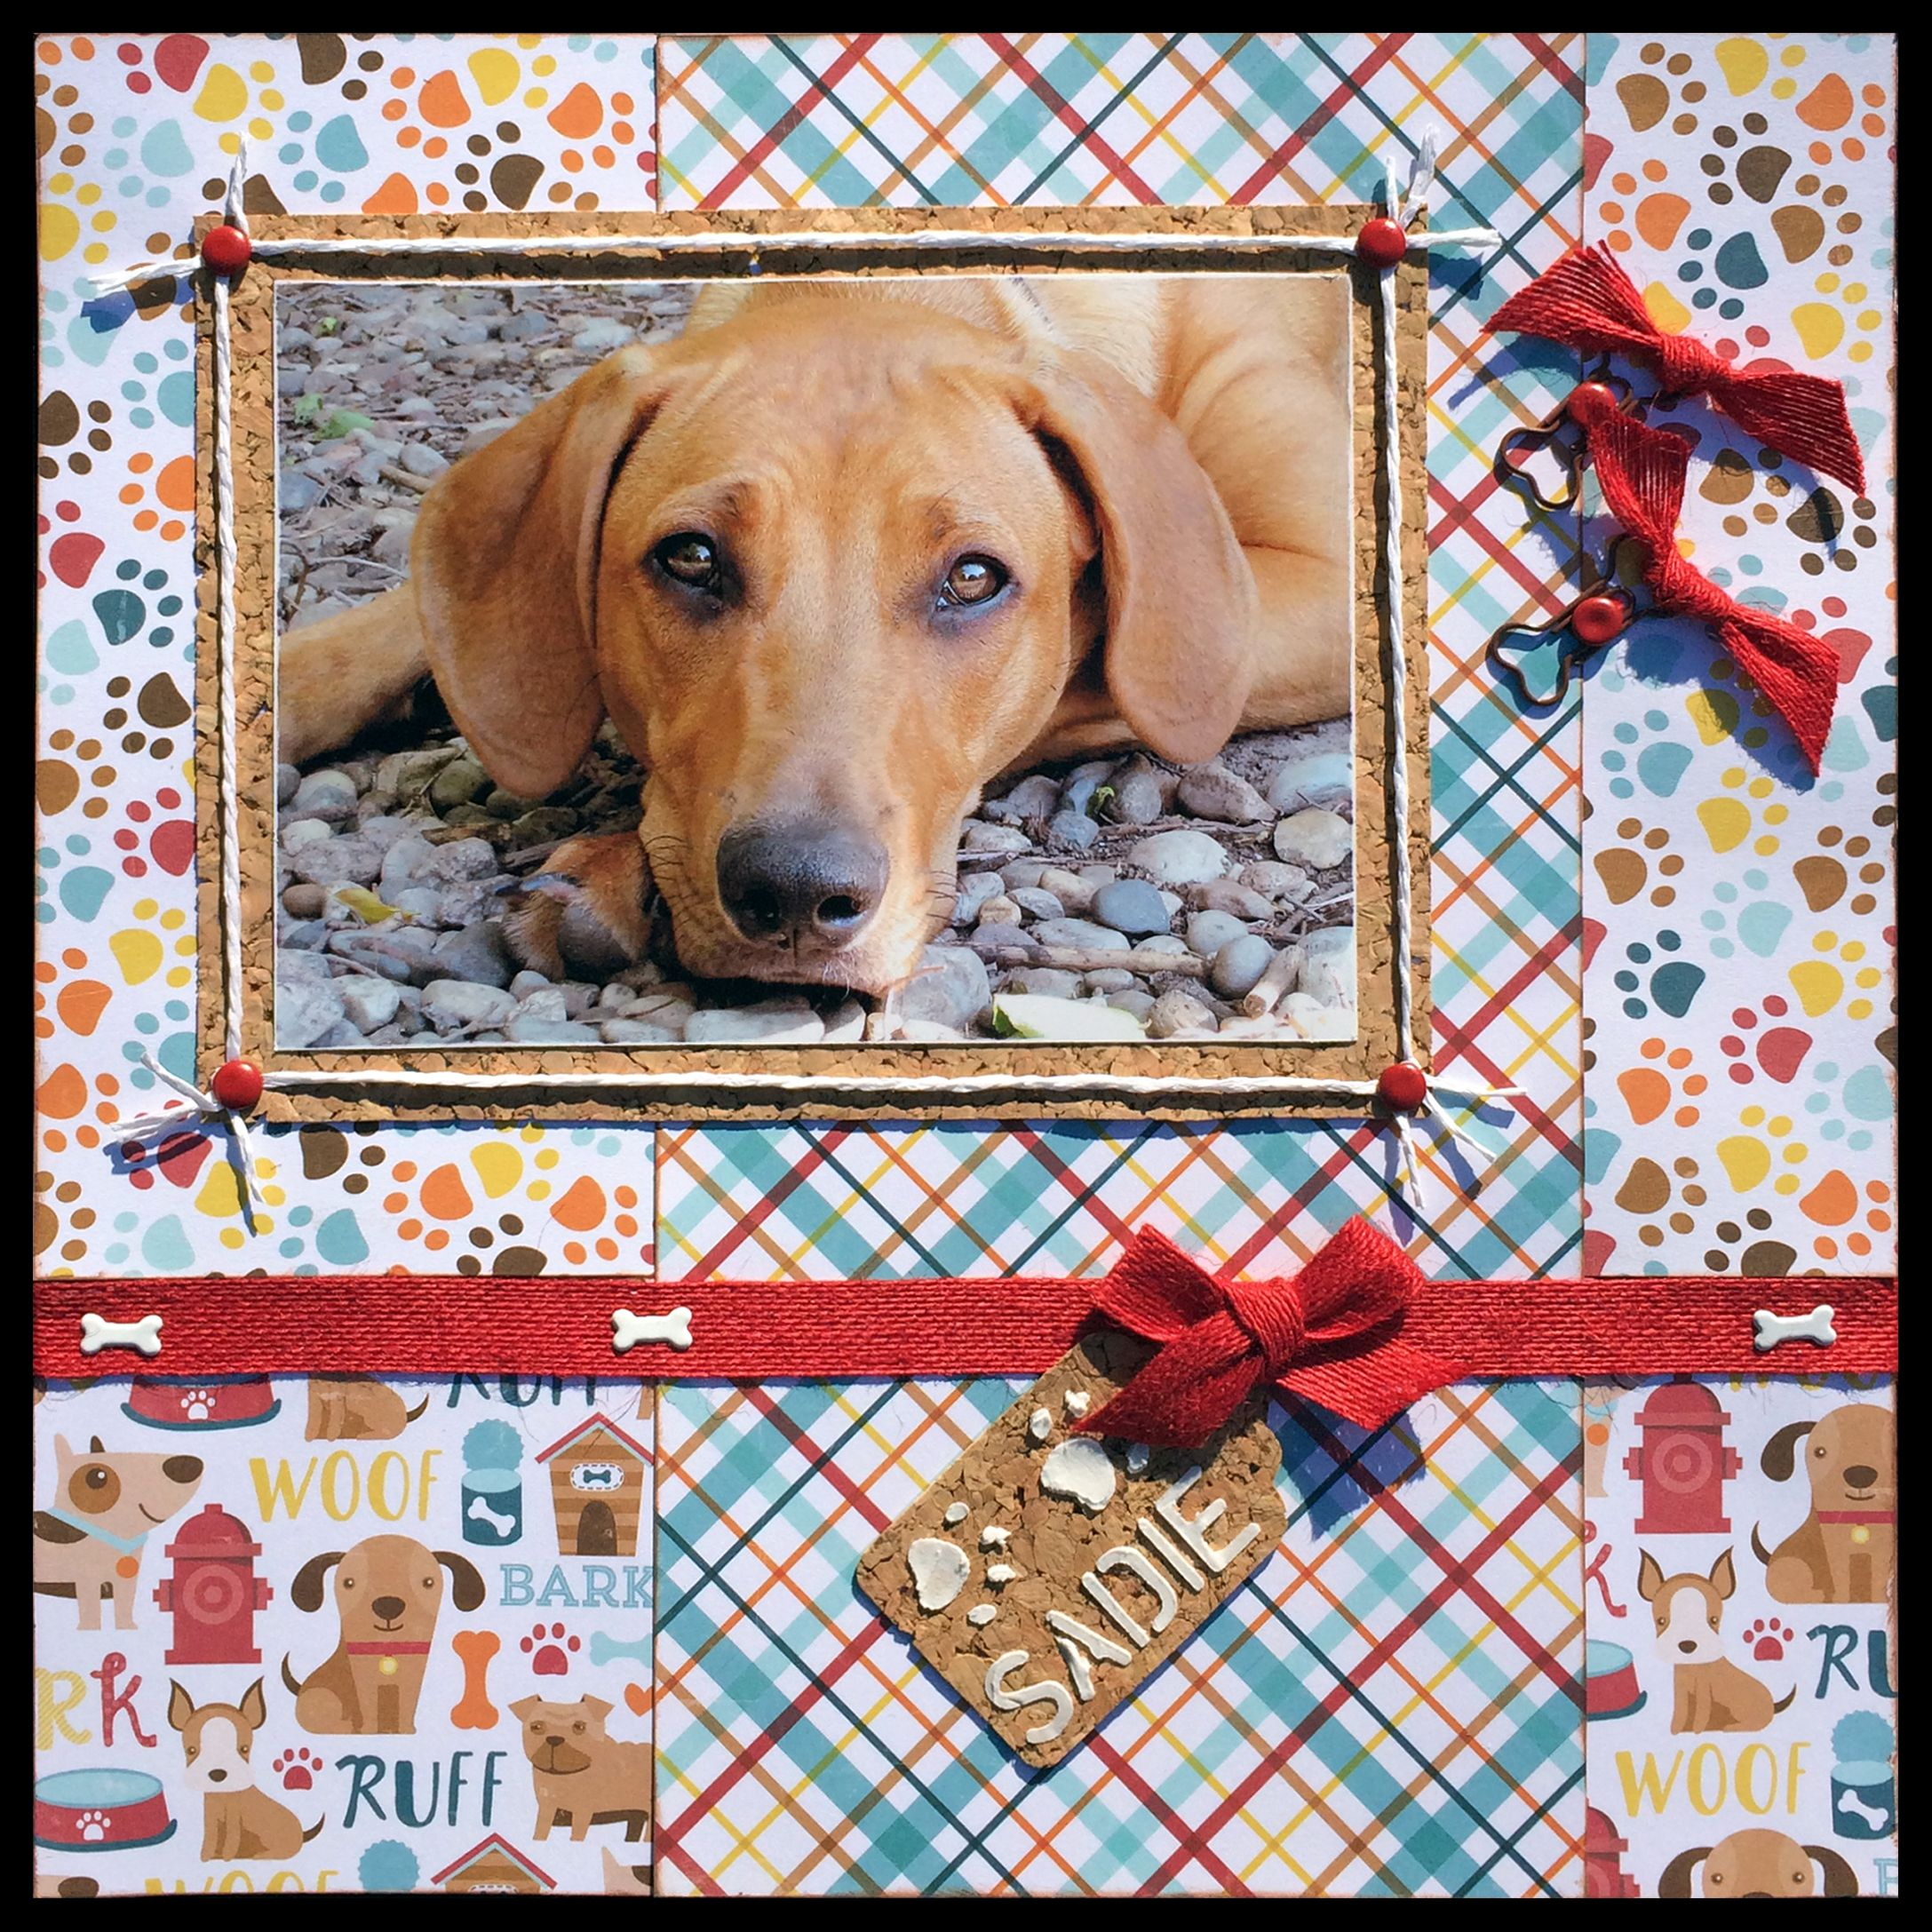 Scrapbook ideas for dogs -  Sadie 12x12 One Page Layout Using Echo Park Bark Papers And Ranger